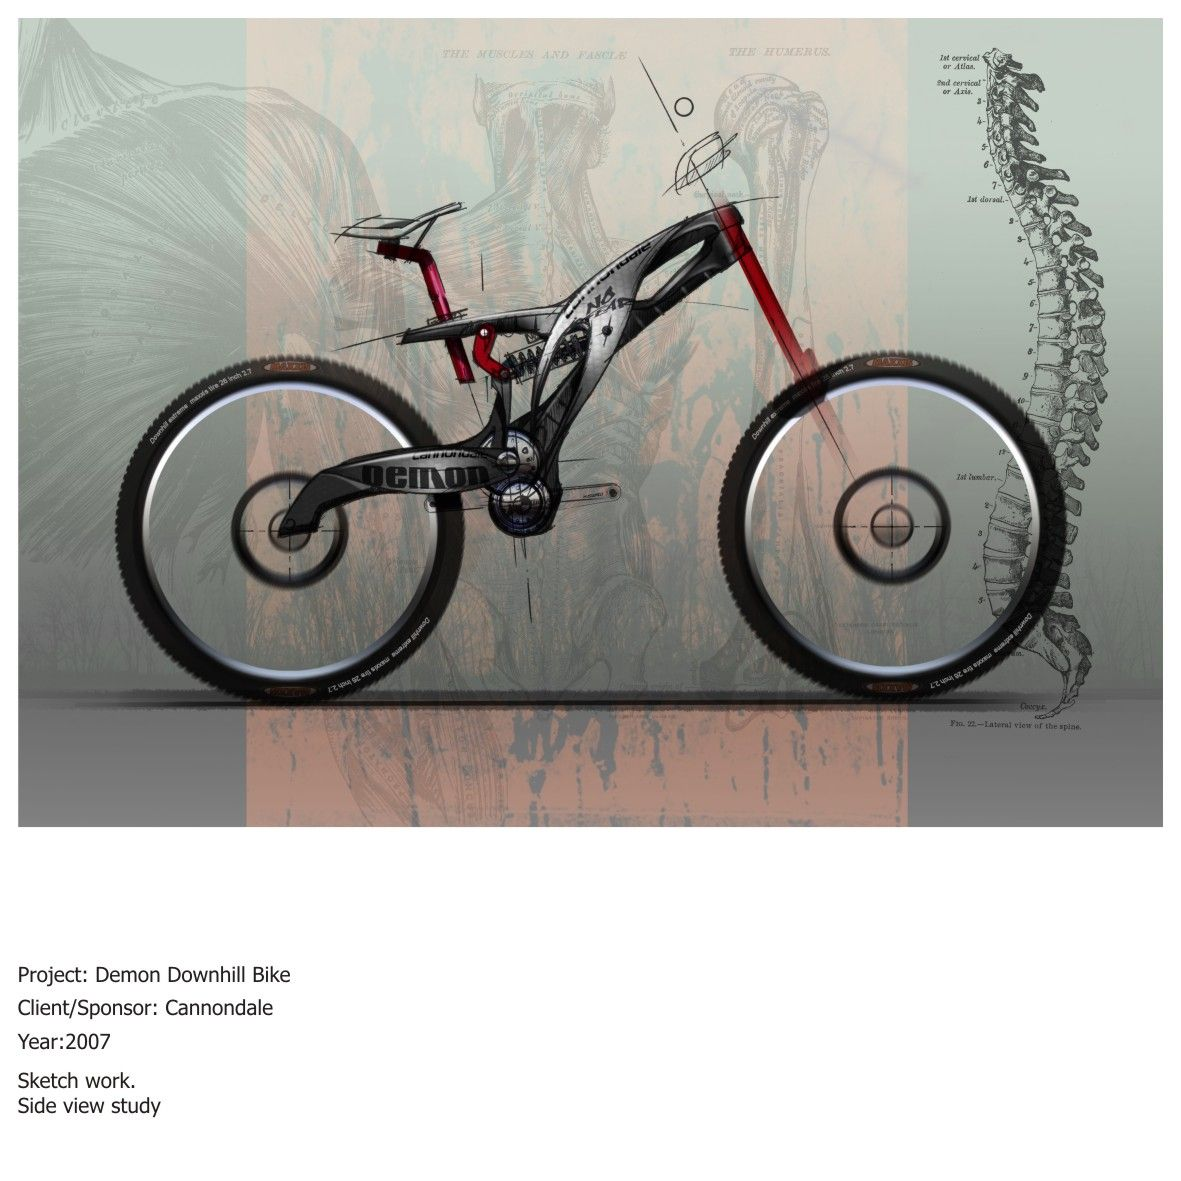 Demon Downhill Bike Sketches 1 Bicycle Bike Sketch Bicycle Sketch